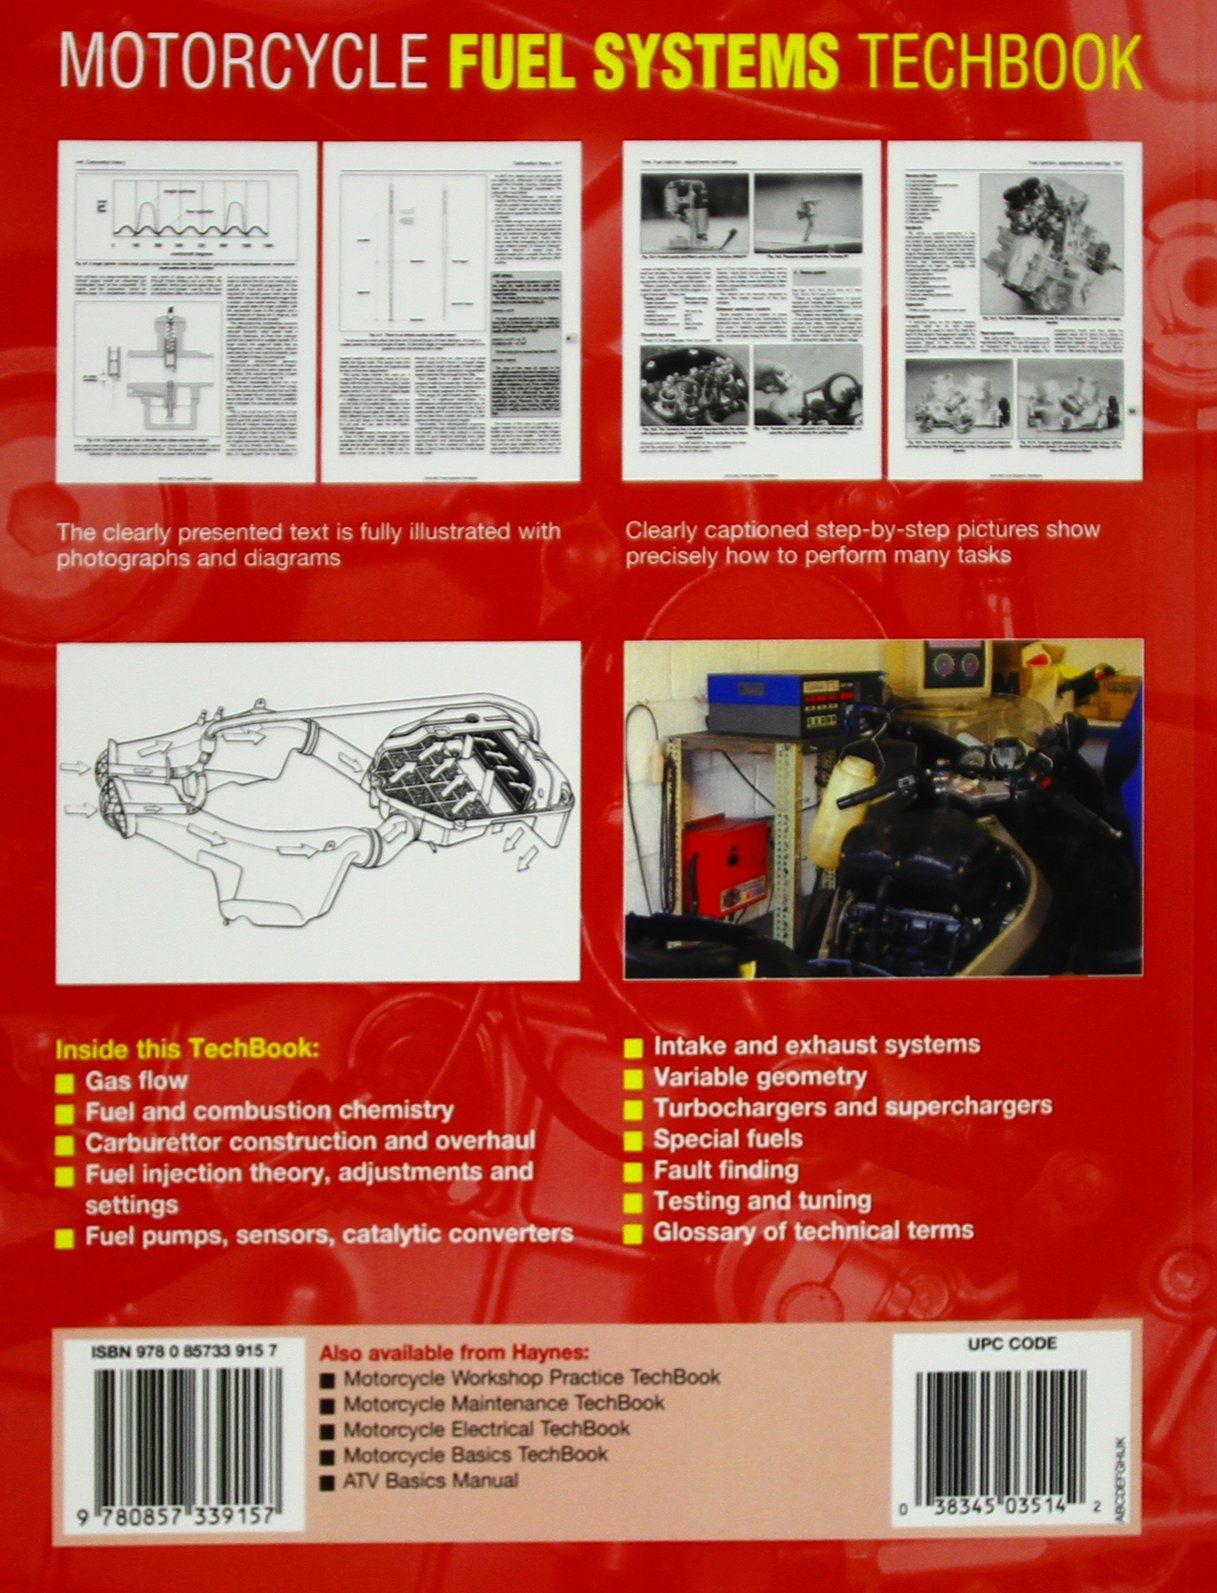 Motorcycle Fuel Systems Haynes Techbook Anon Cz Motorcycles Engine Diagram 9780857339157 Books